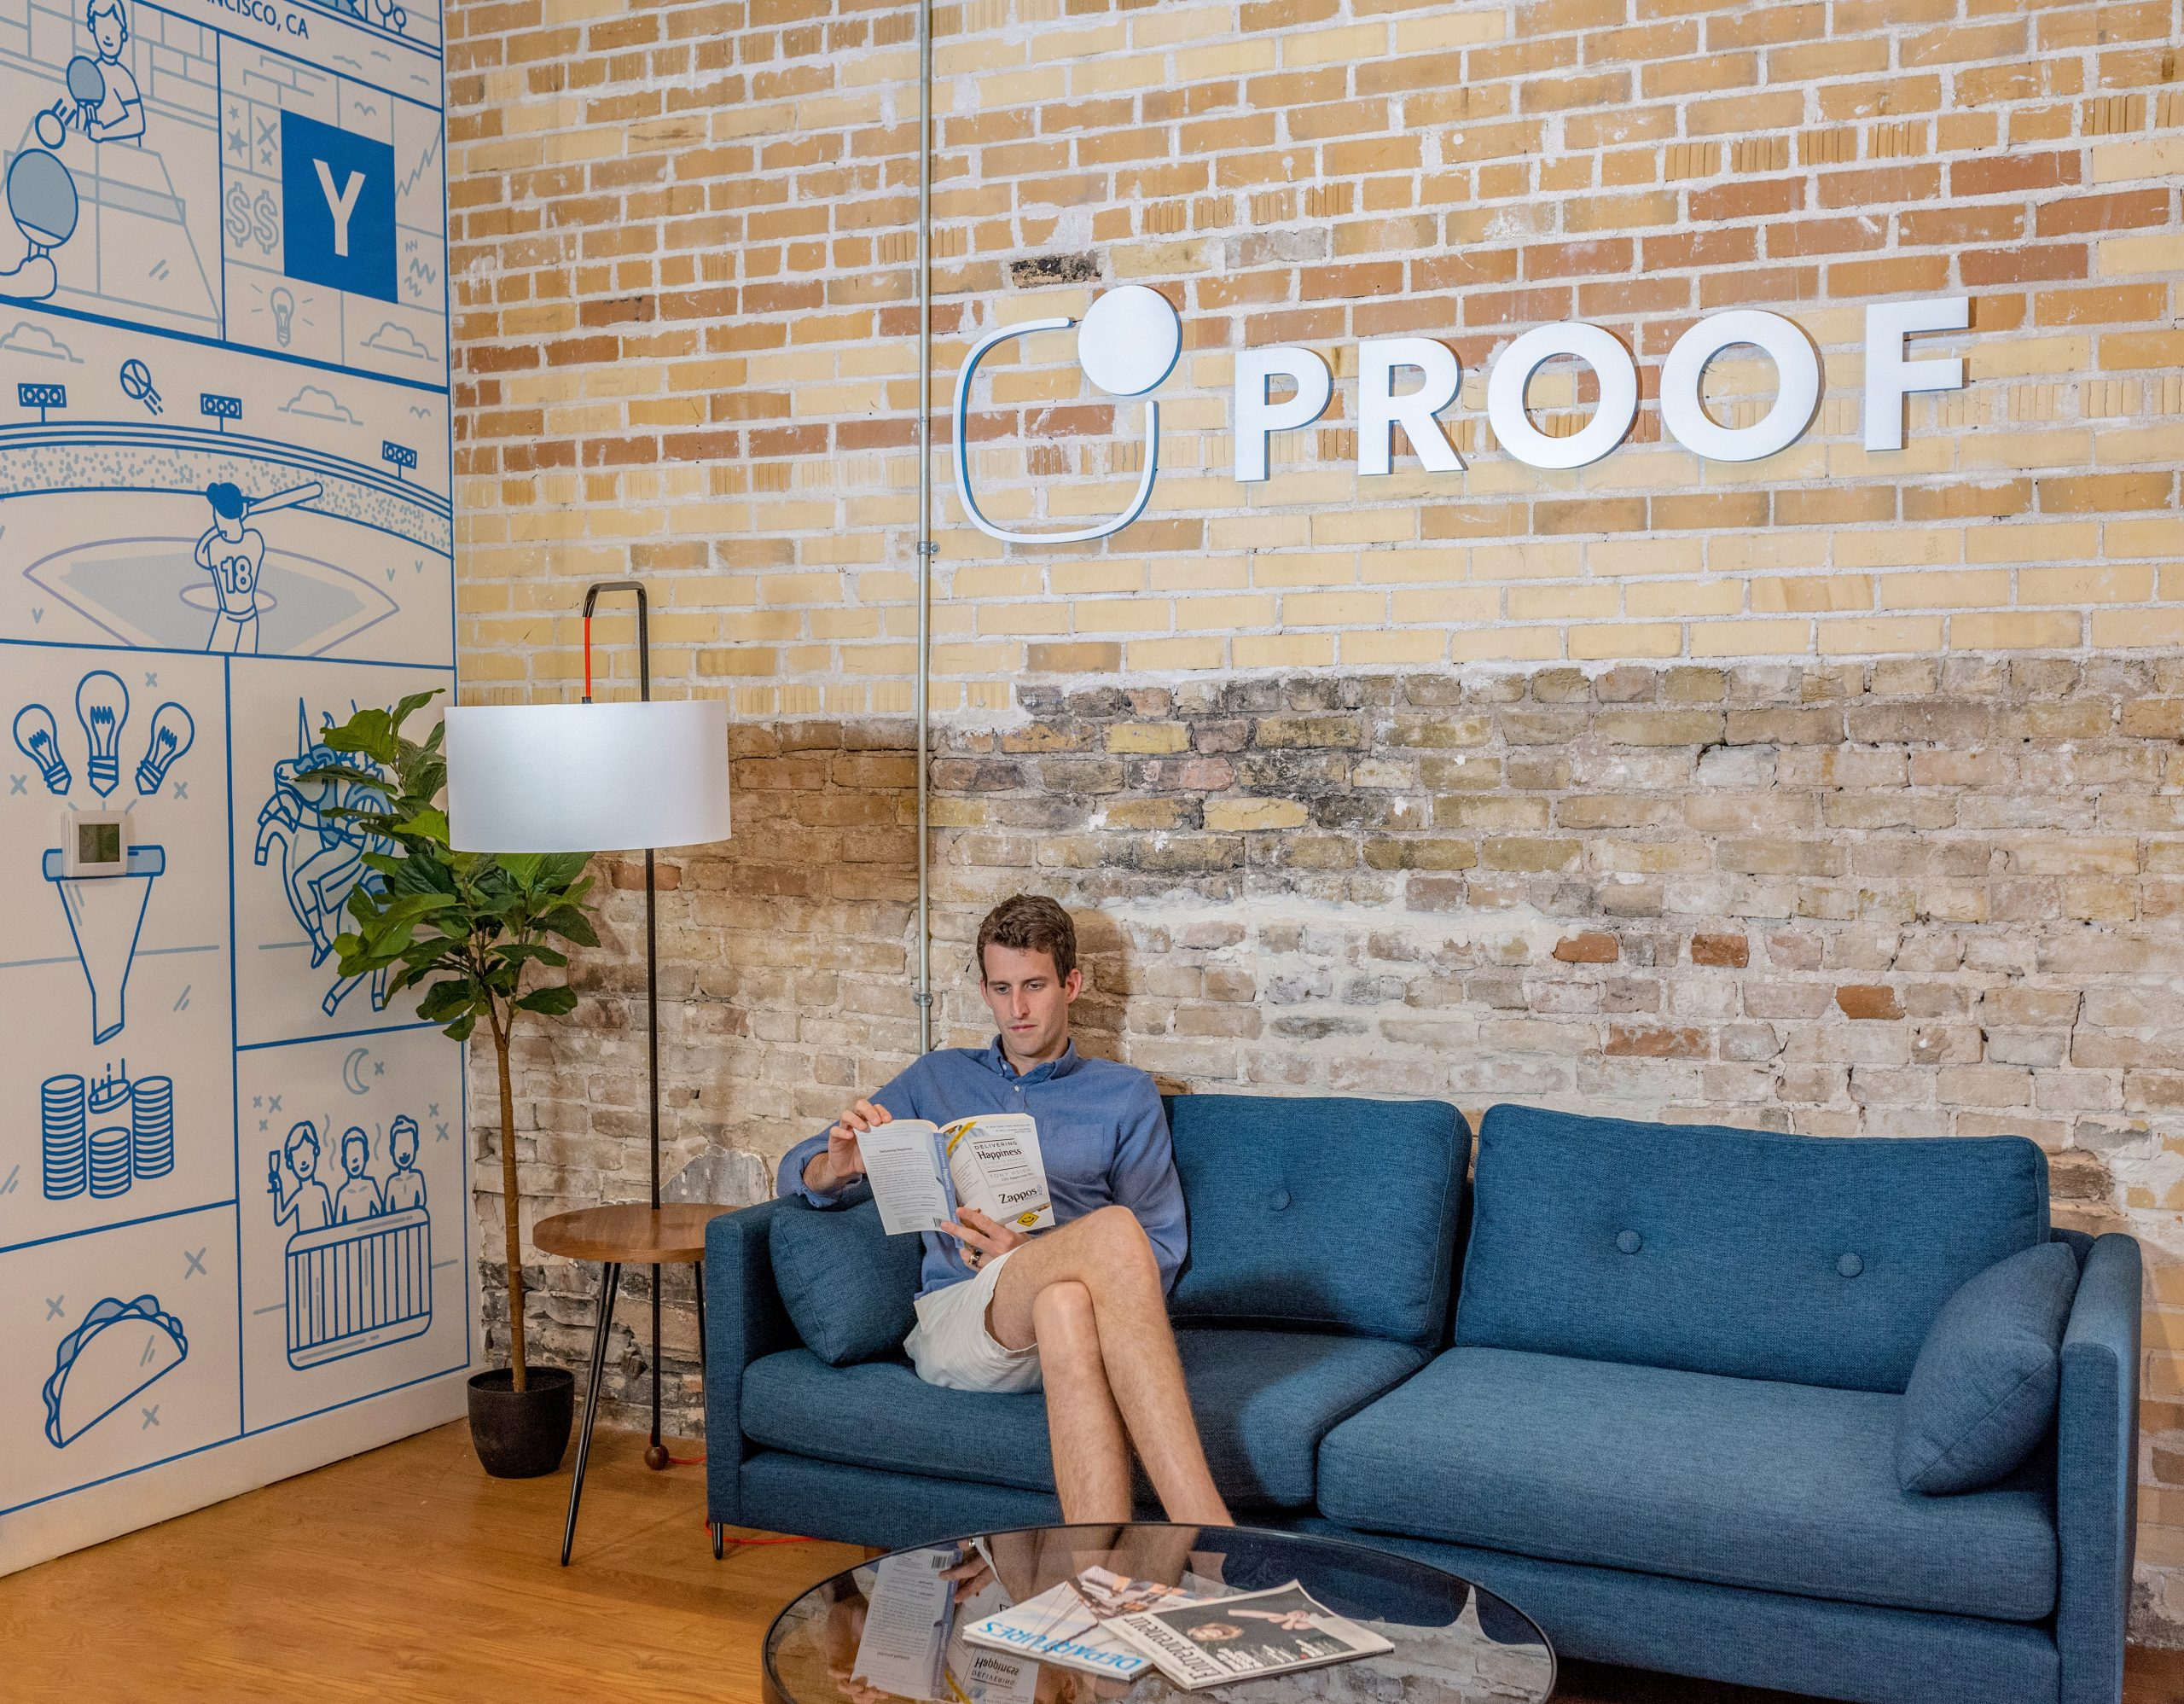 Image of man sitting on a couch reading with the word Proof on the wall above him